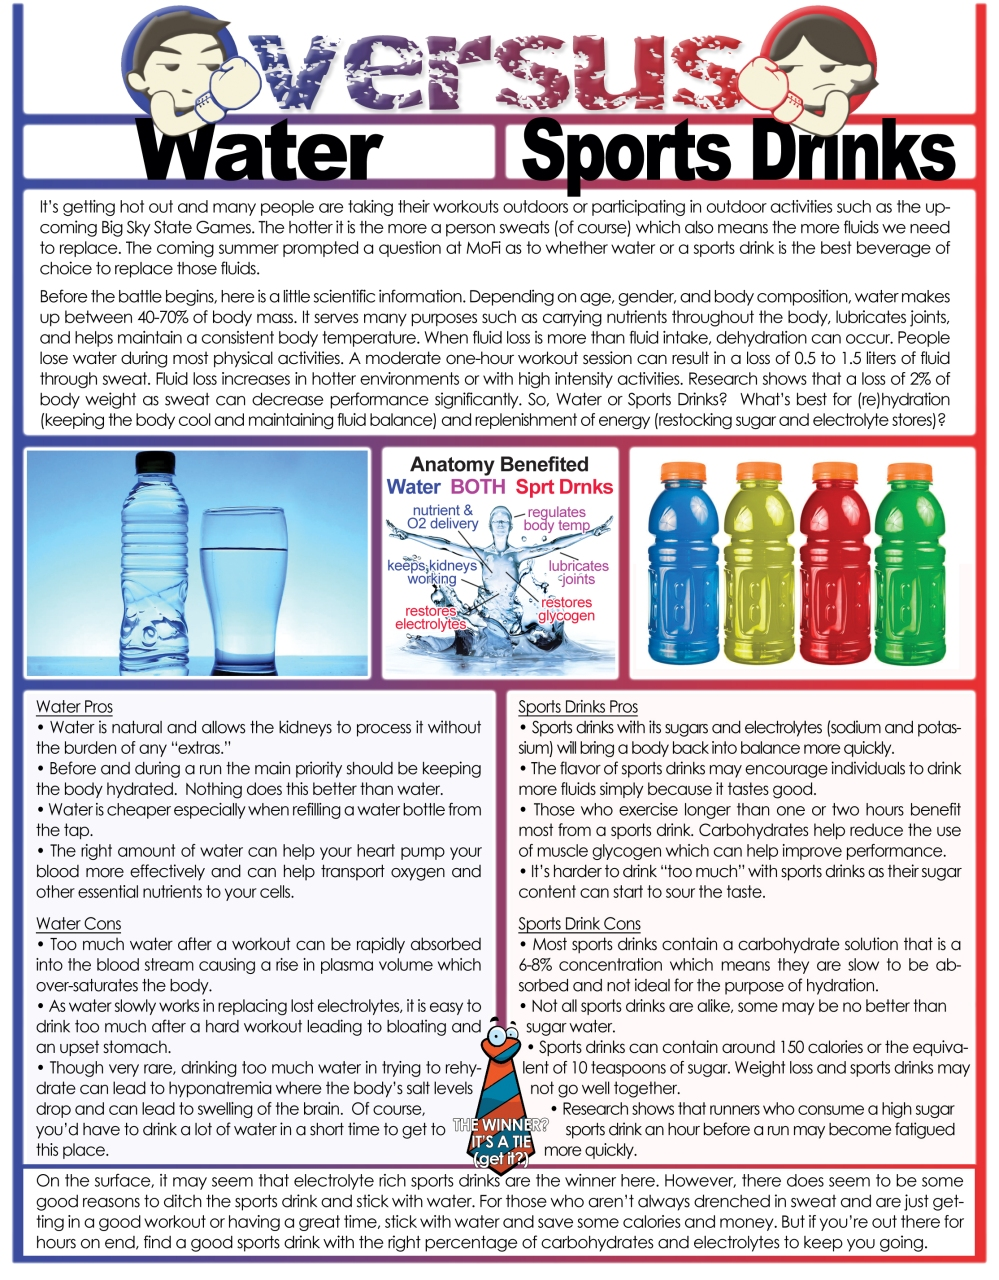 Versus_Water vs Sports Drinks_FINAL.jpg